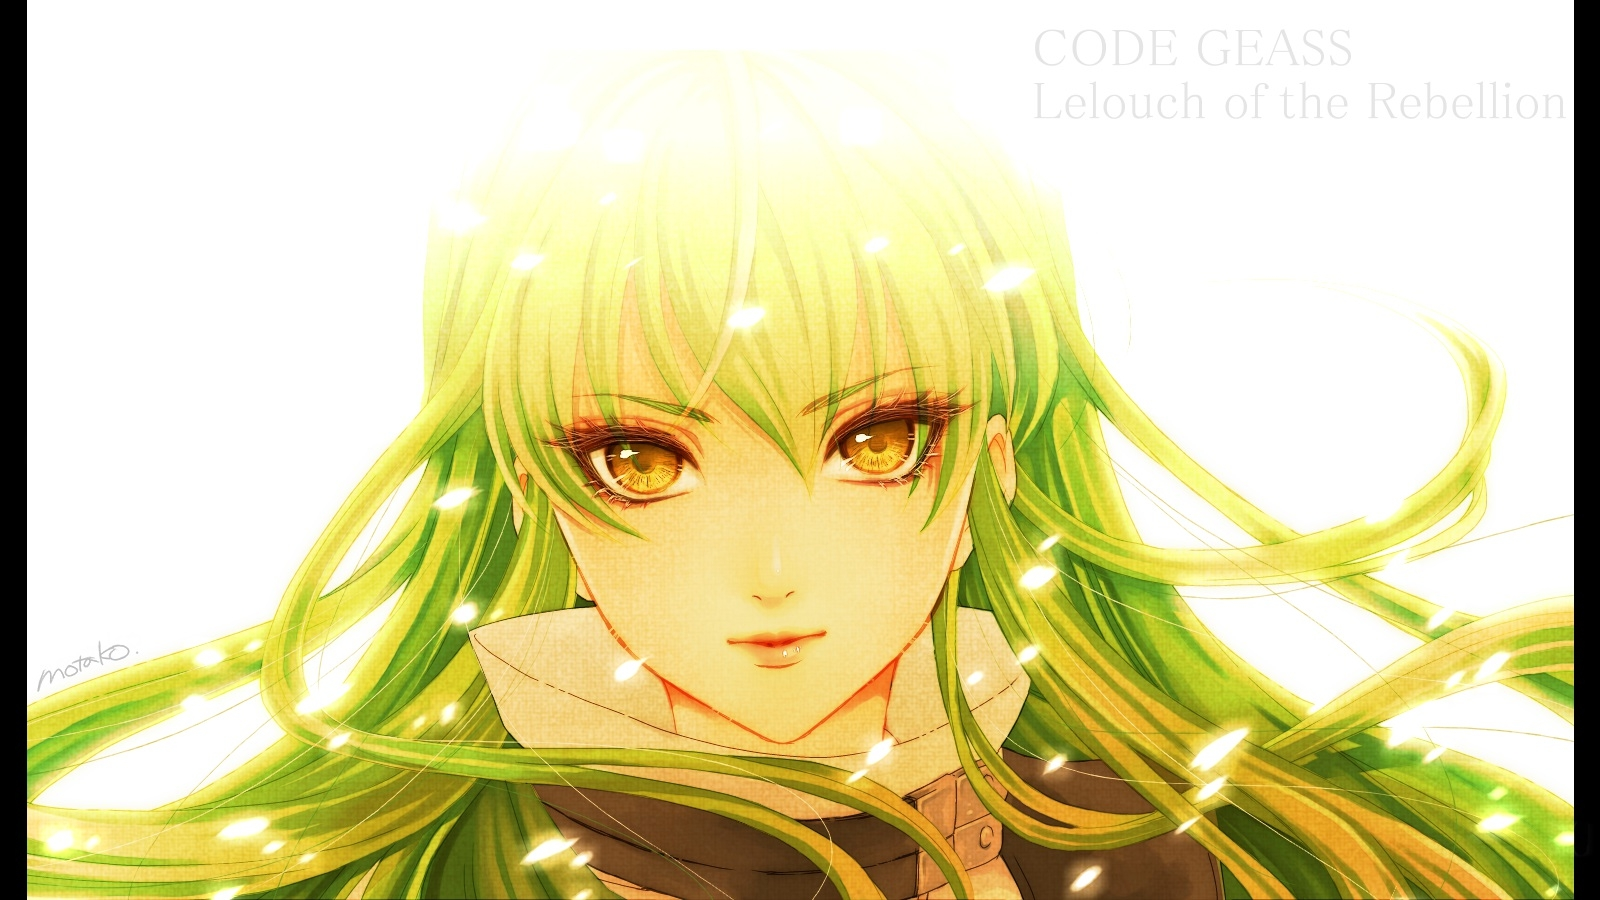 Code Geass: Lelouch of the Rebellion, Green Hair, C.C.